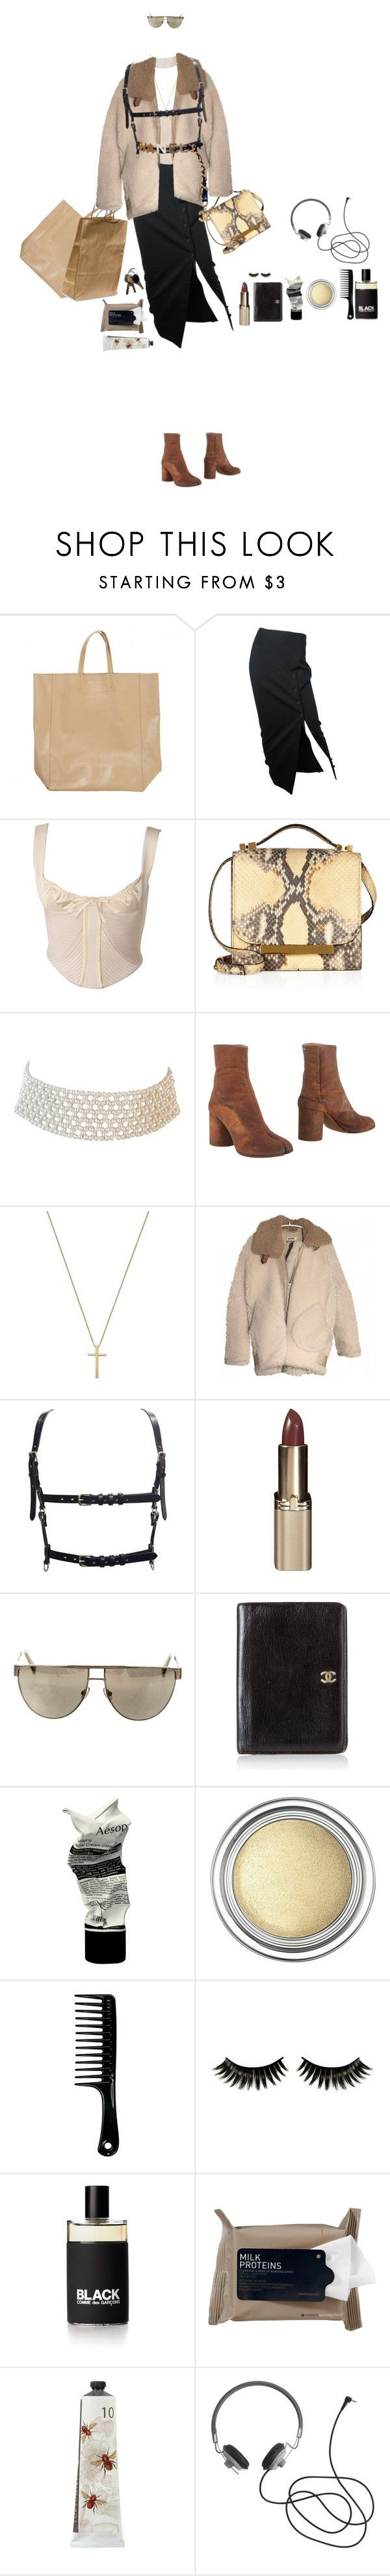 """127"" by coconutmiik ❤ liked on Polyvore featuring CÉLINE, Jean-Paul Gaultier, Versace, The Row, Marina J., Maison Margiela, Gucci, Acne Studios, L'Oréal Paris and Balmain"